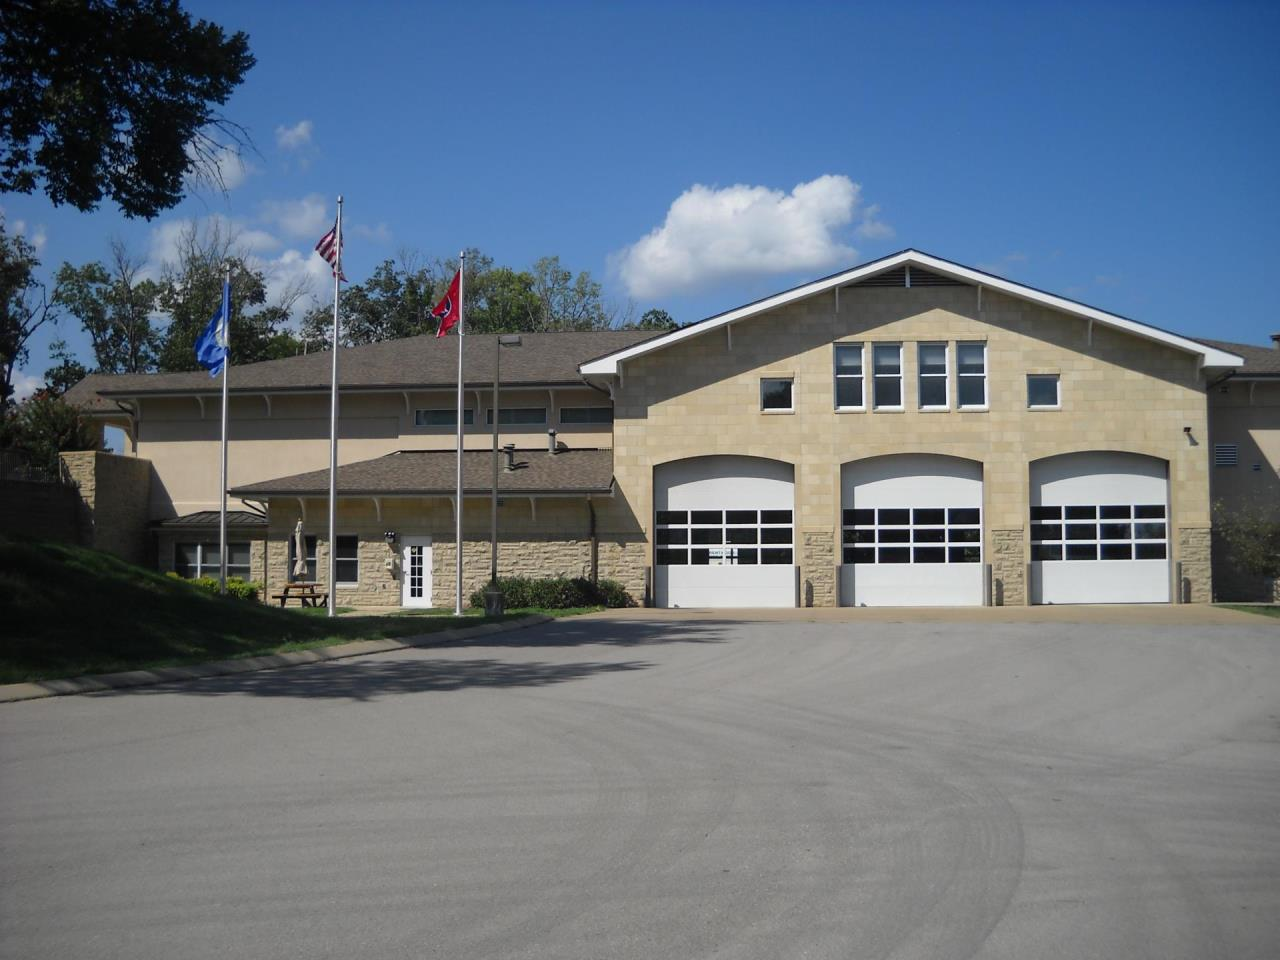 Fire Station Four